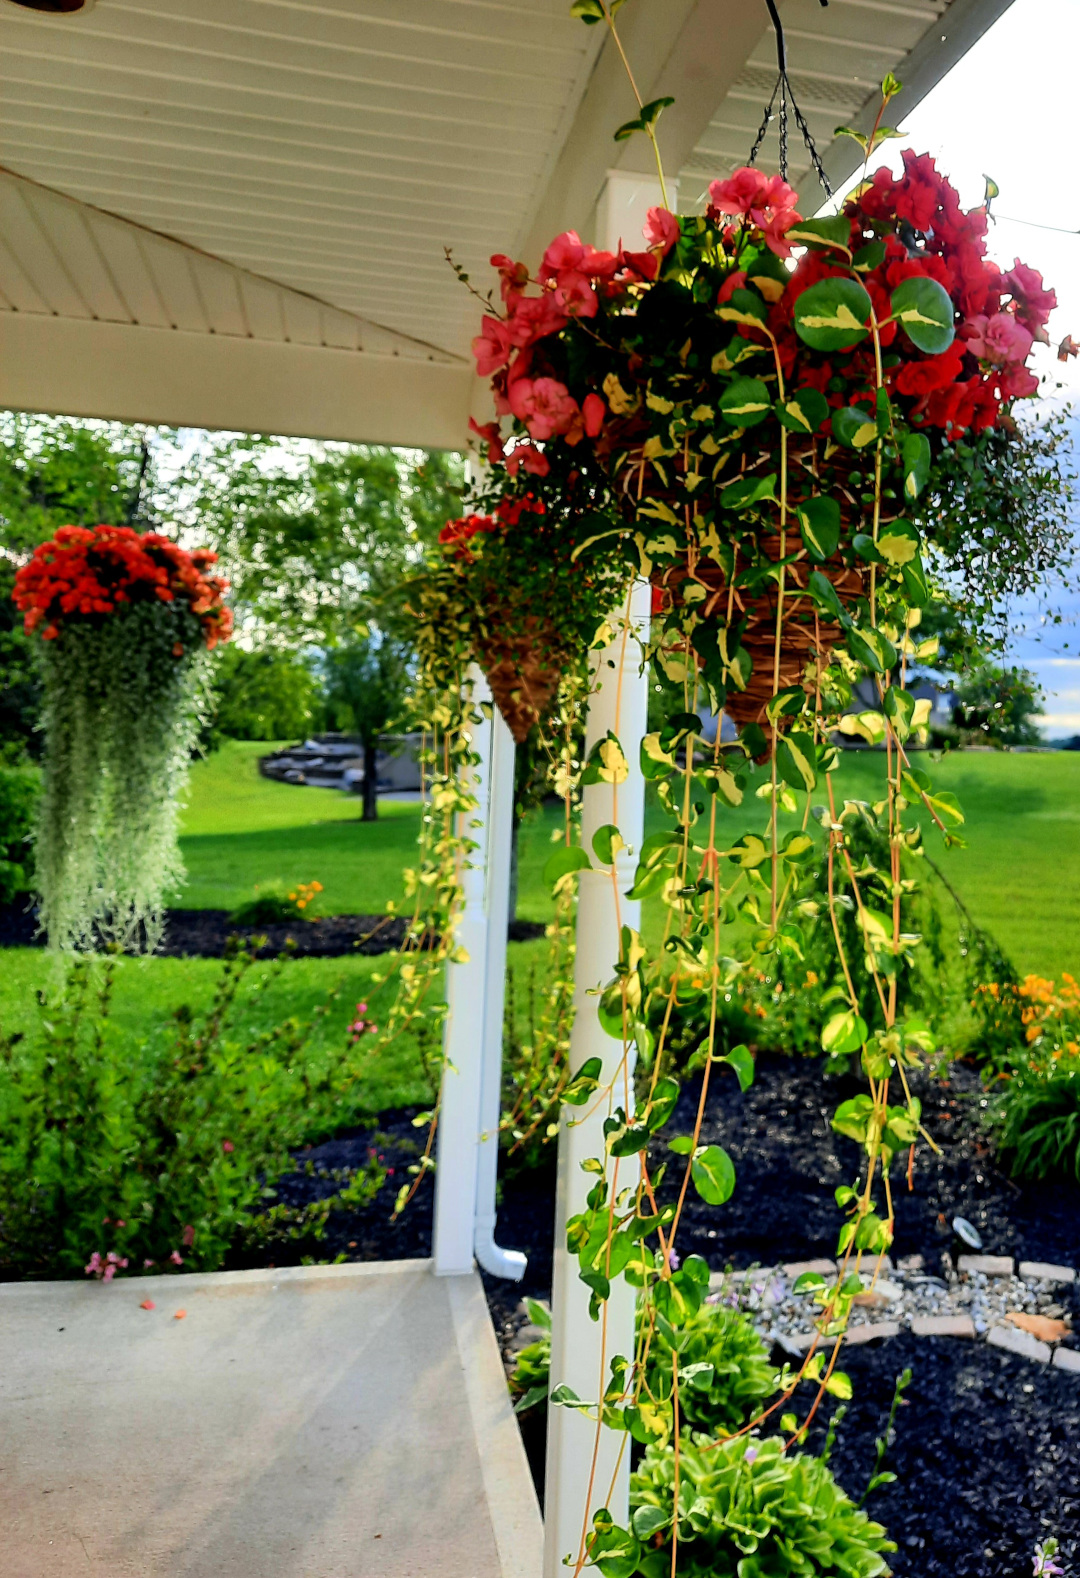 hanging baskets with trailing foliage around a covered porch